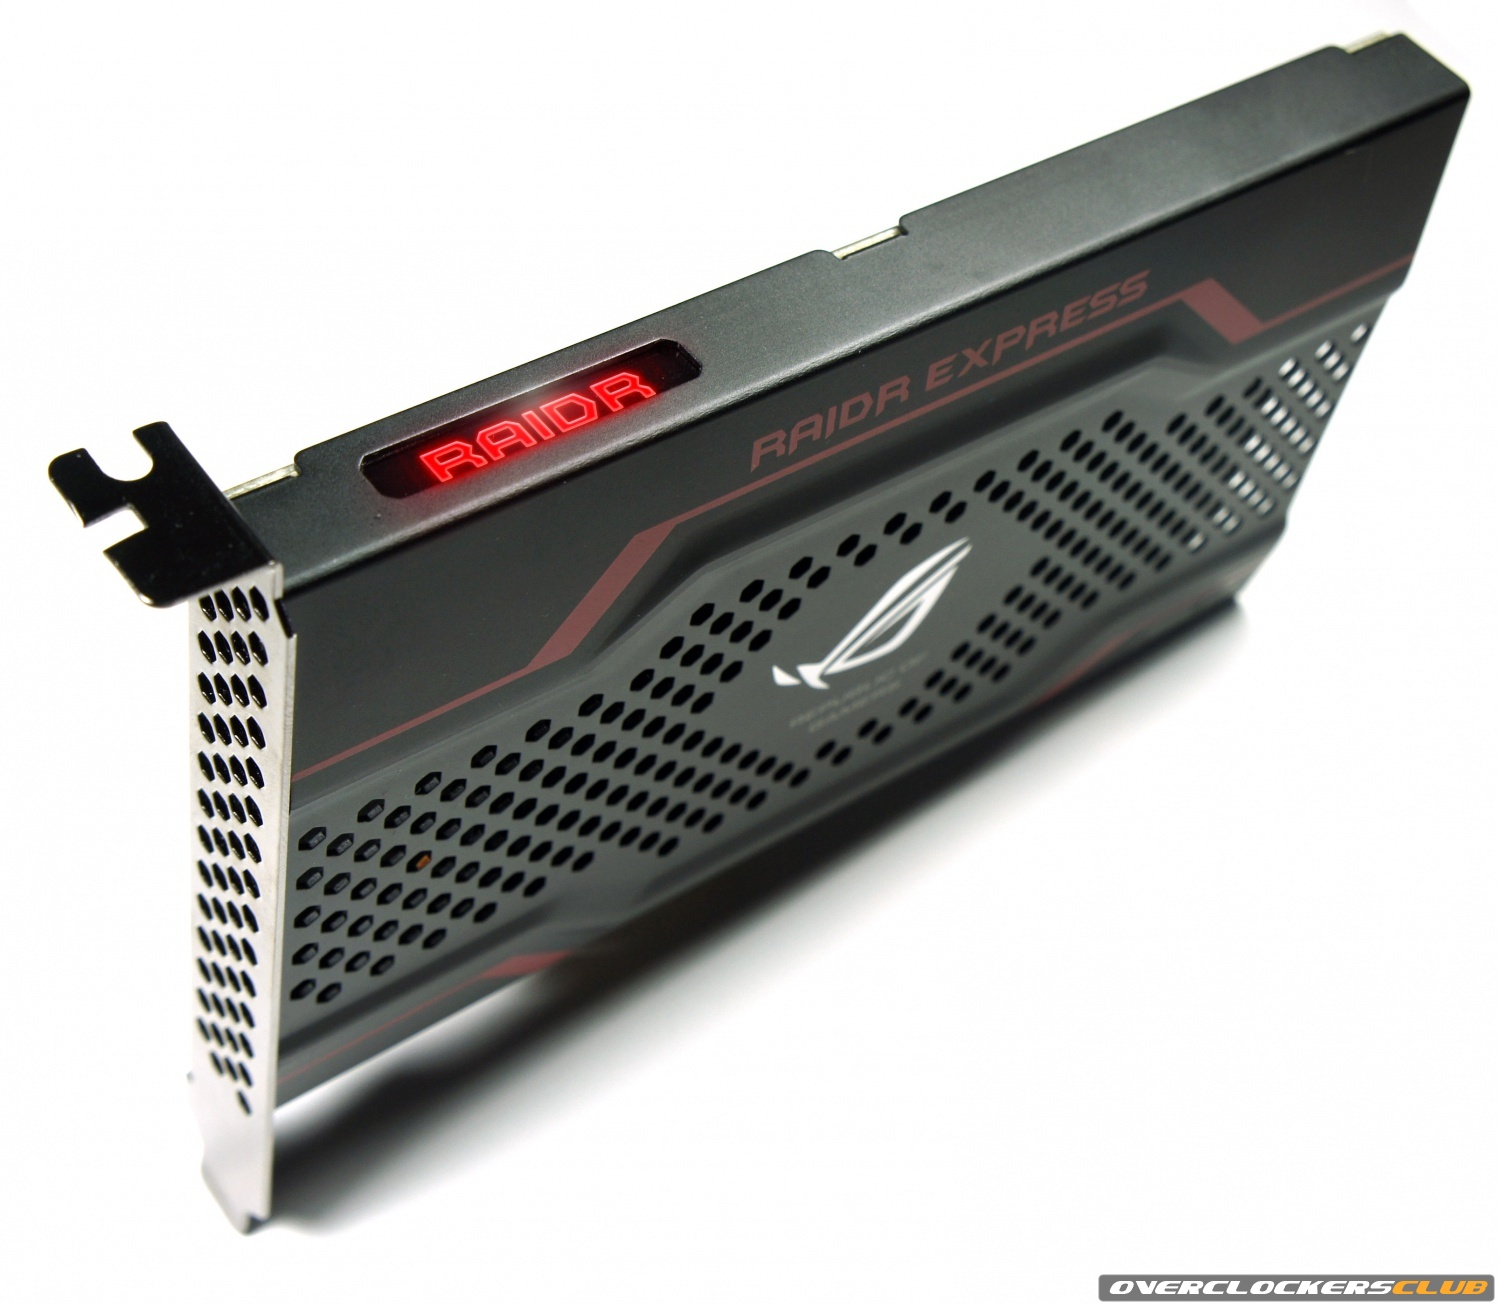 ASUS Unveils ROG RAIDR Express: A High-Performance PCIe SSD